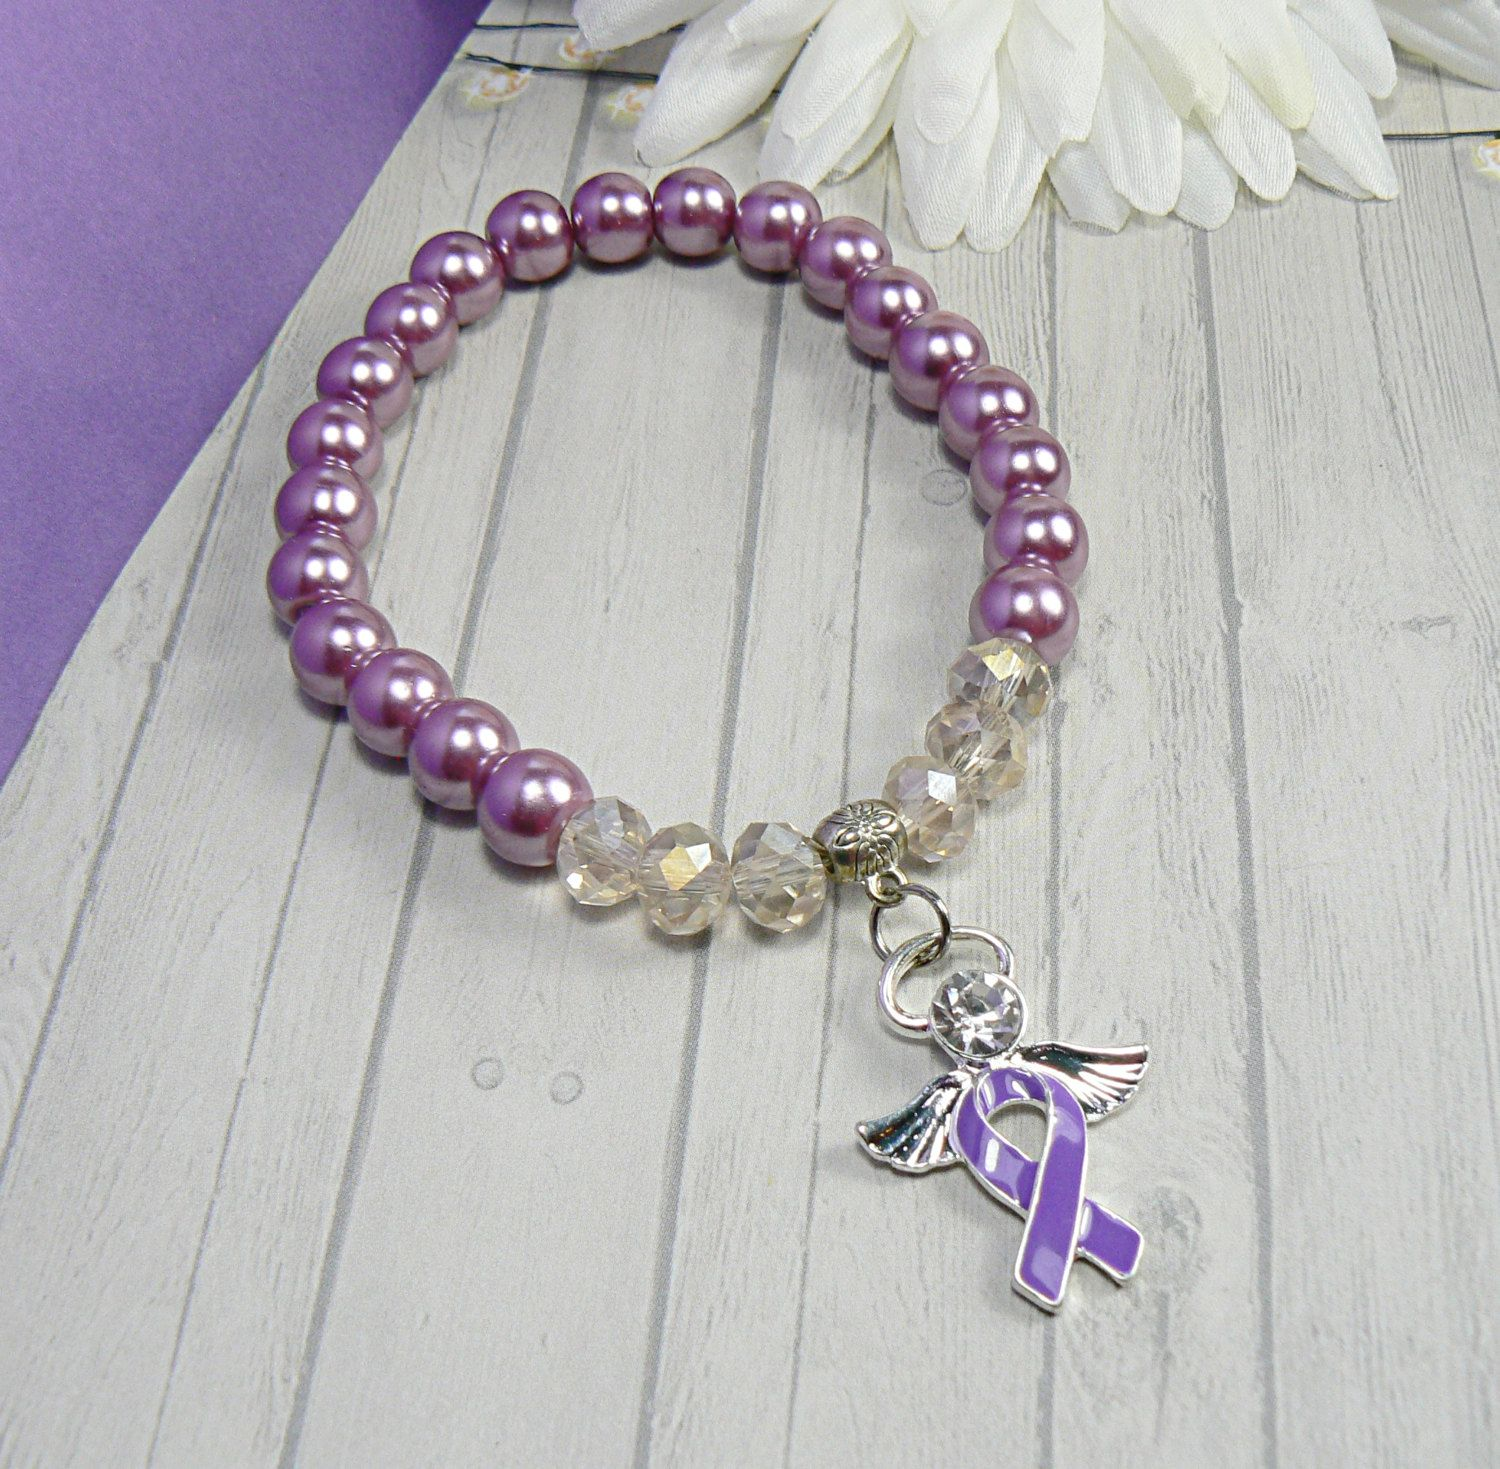 silver memorial on sympathy awareness s ribbon fuck sajolie by purple bracelet alzheimer